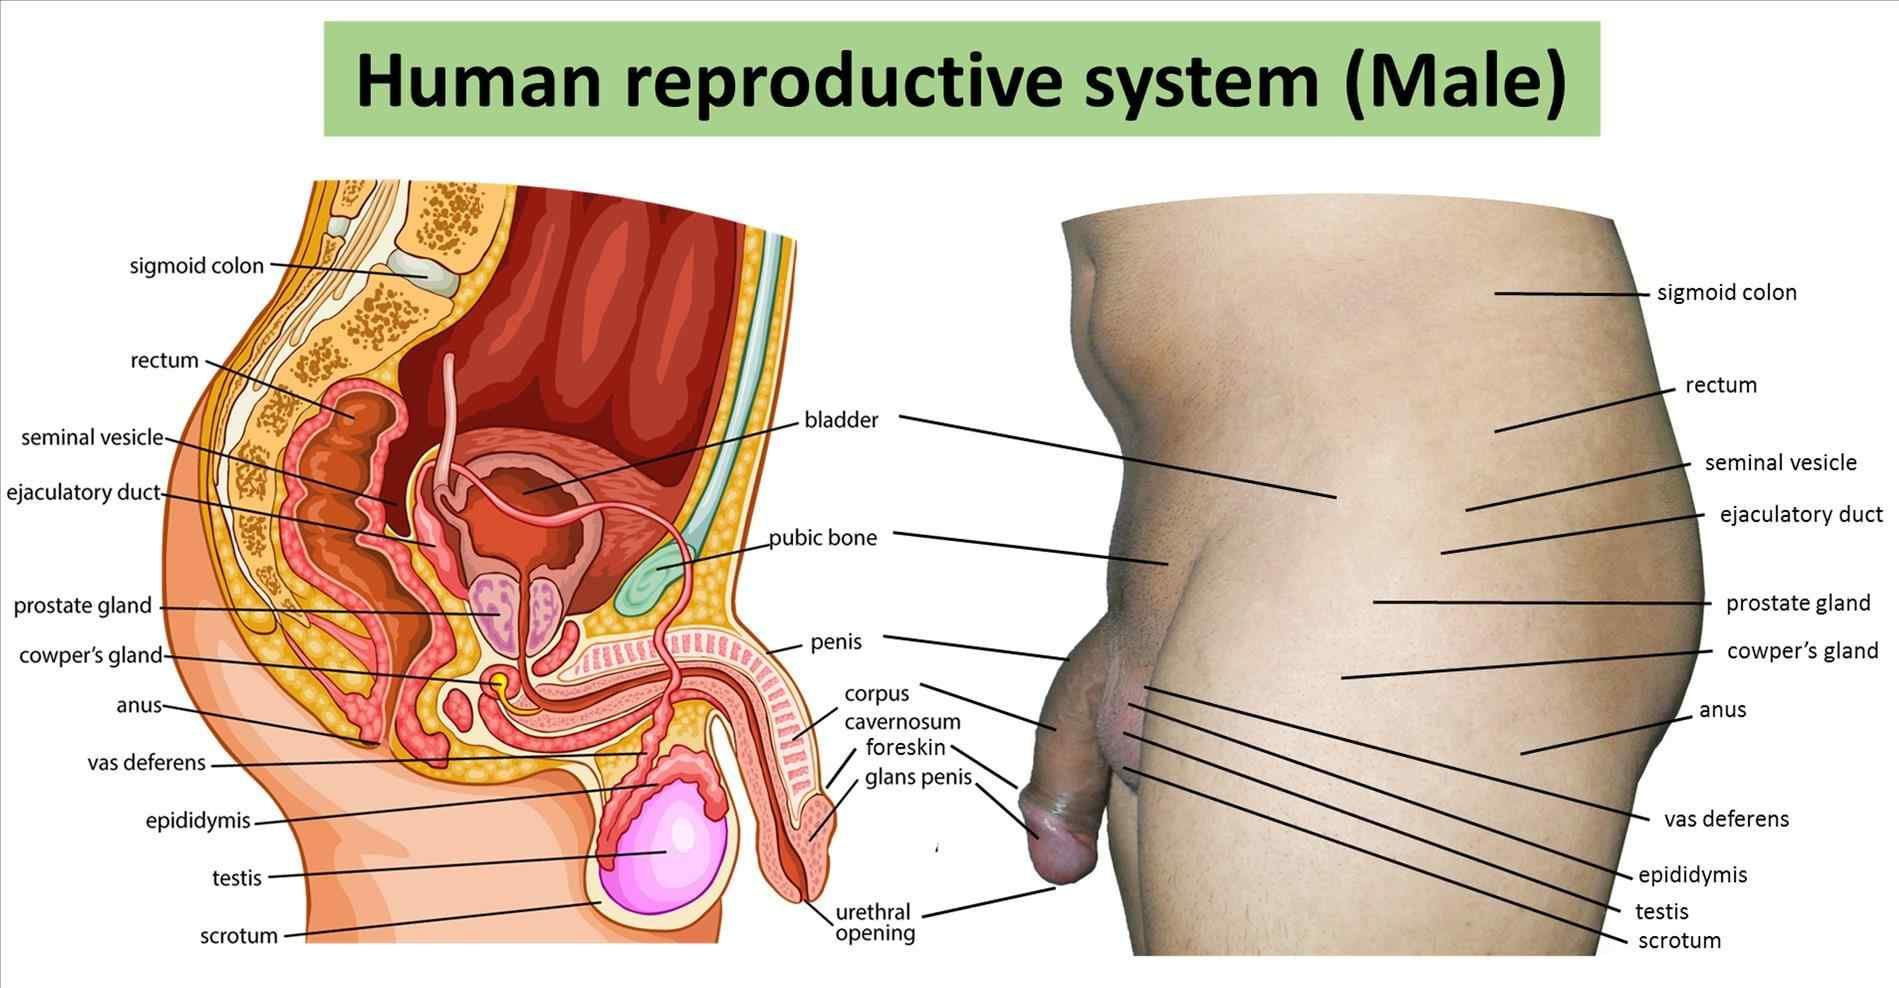 How to insert male organ into female organ diagram template ...